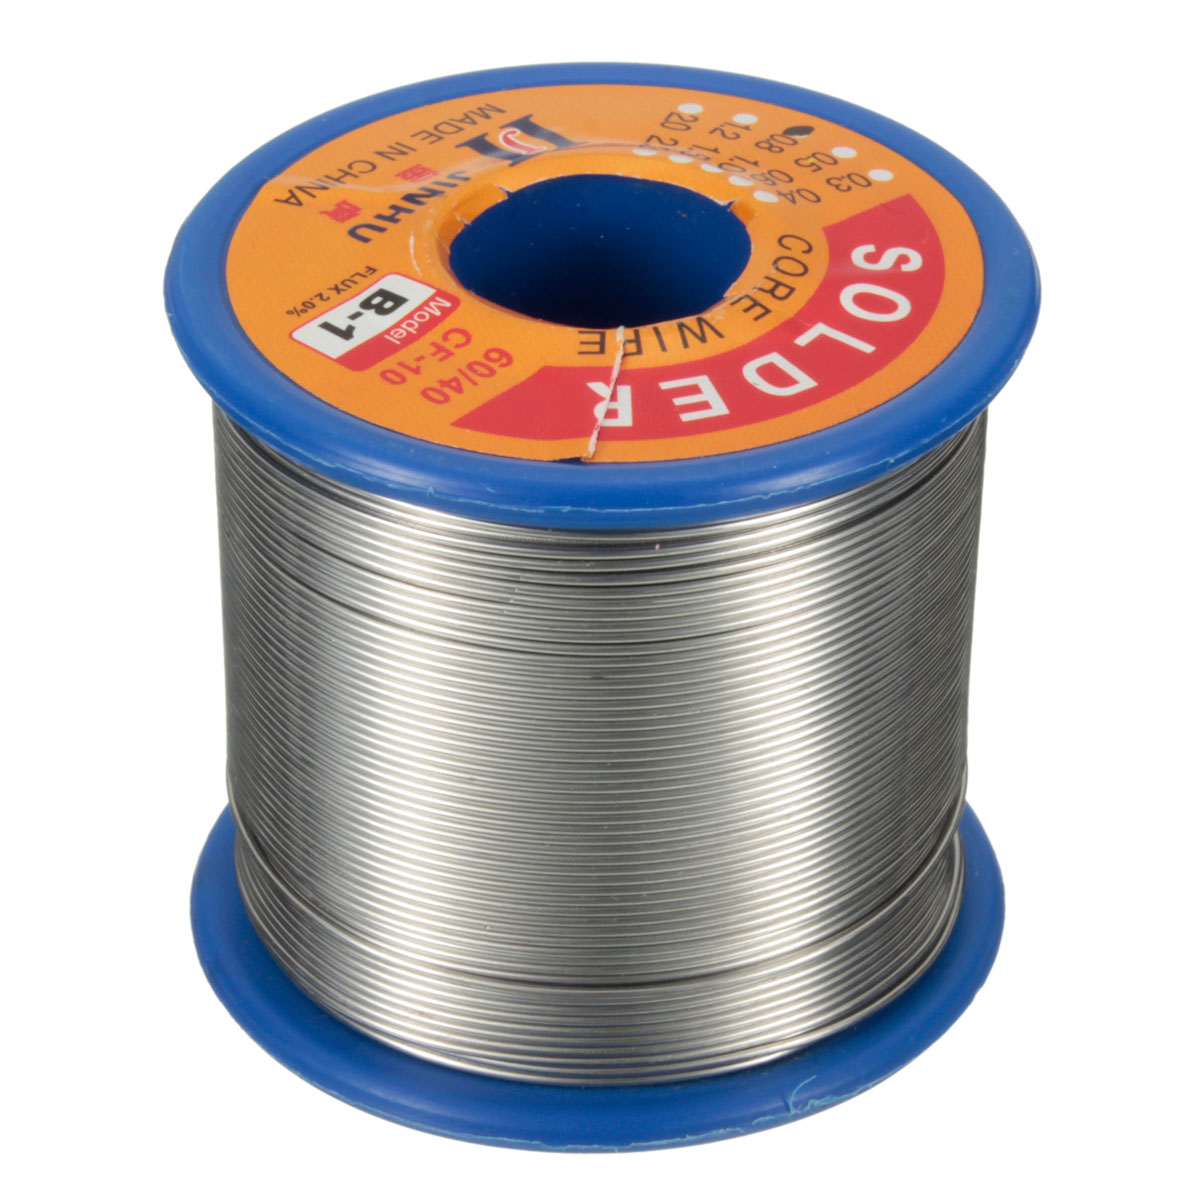 500g <font><b>60/40</b></font> 2% Flux Tin Lead 0.5-2mm Soldering Reel Wire Rosin Core <font><b>Solder</b></font> for Welding image